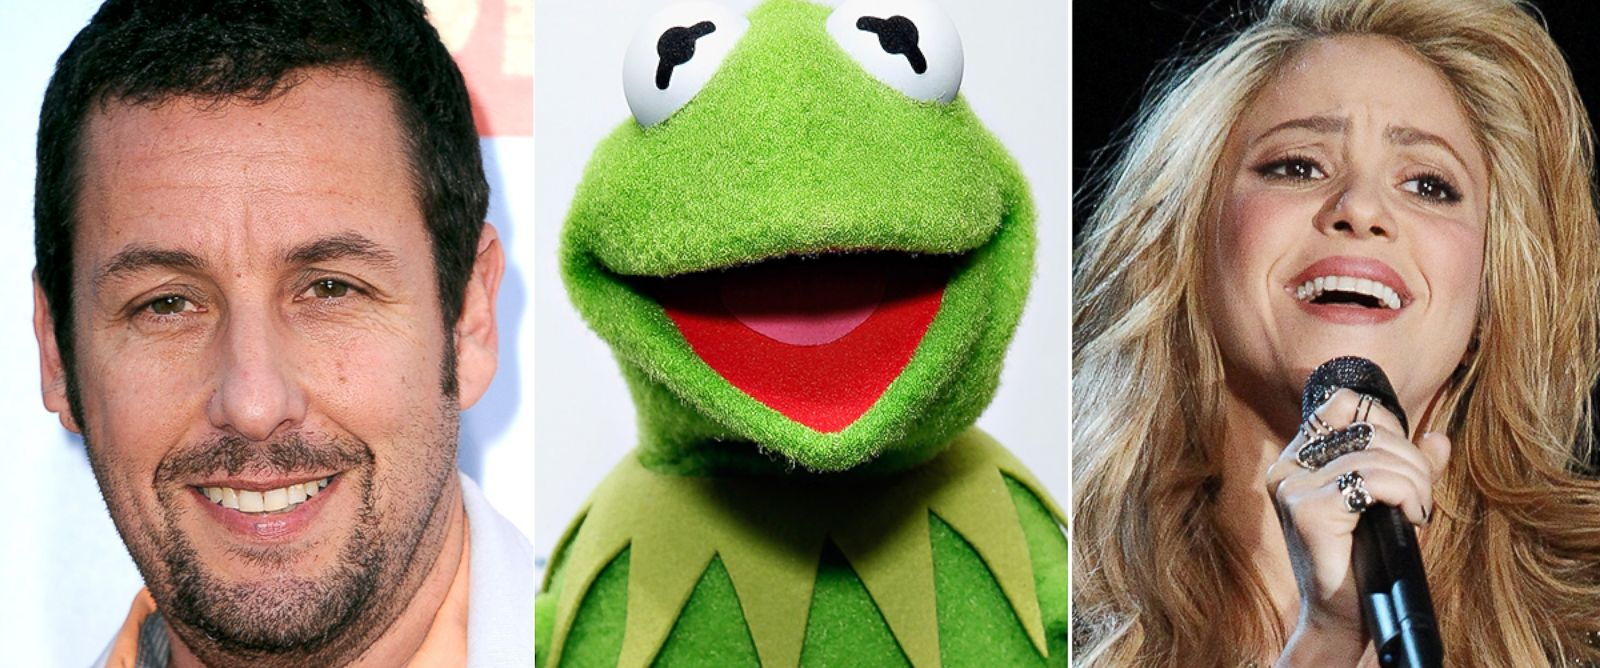 PHOTO: Rob Cantor impersonates dozens of celebrities, including Adam Sander, Kermit the Frog and Shakira.